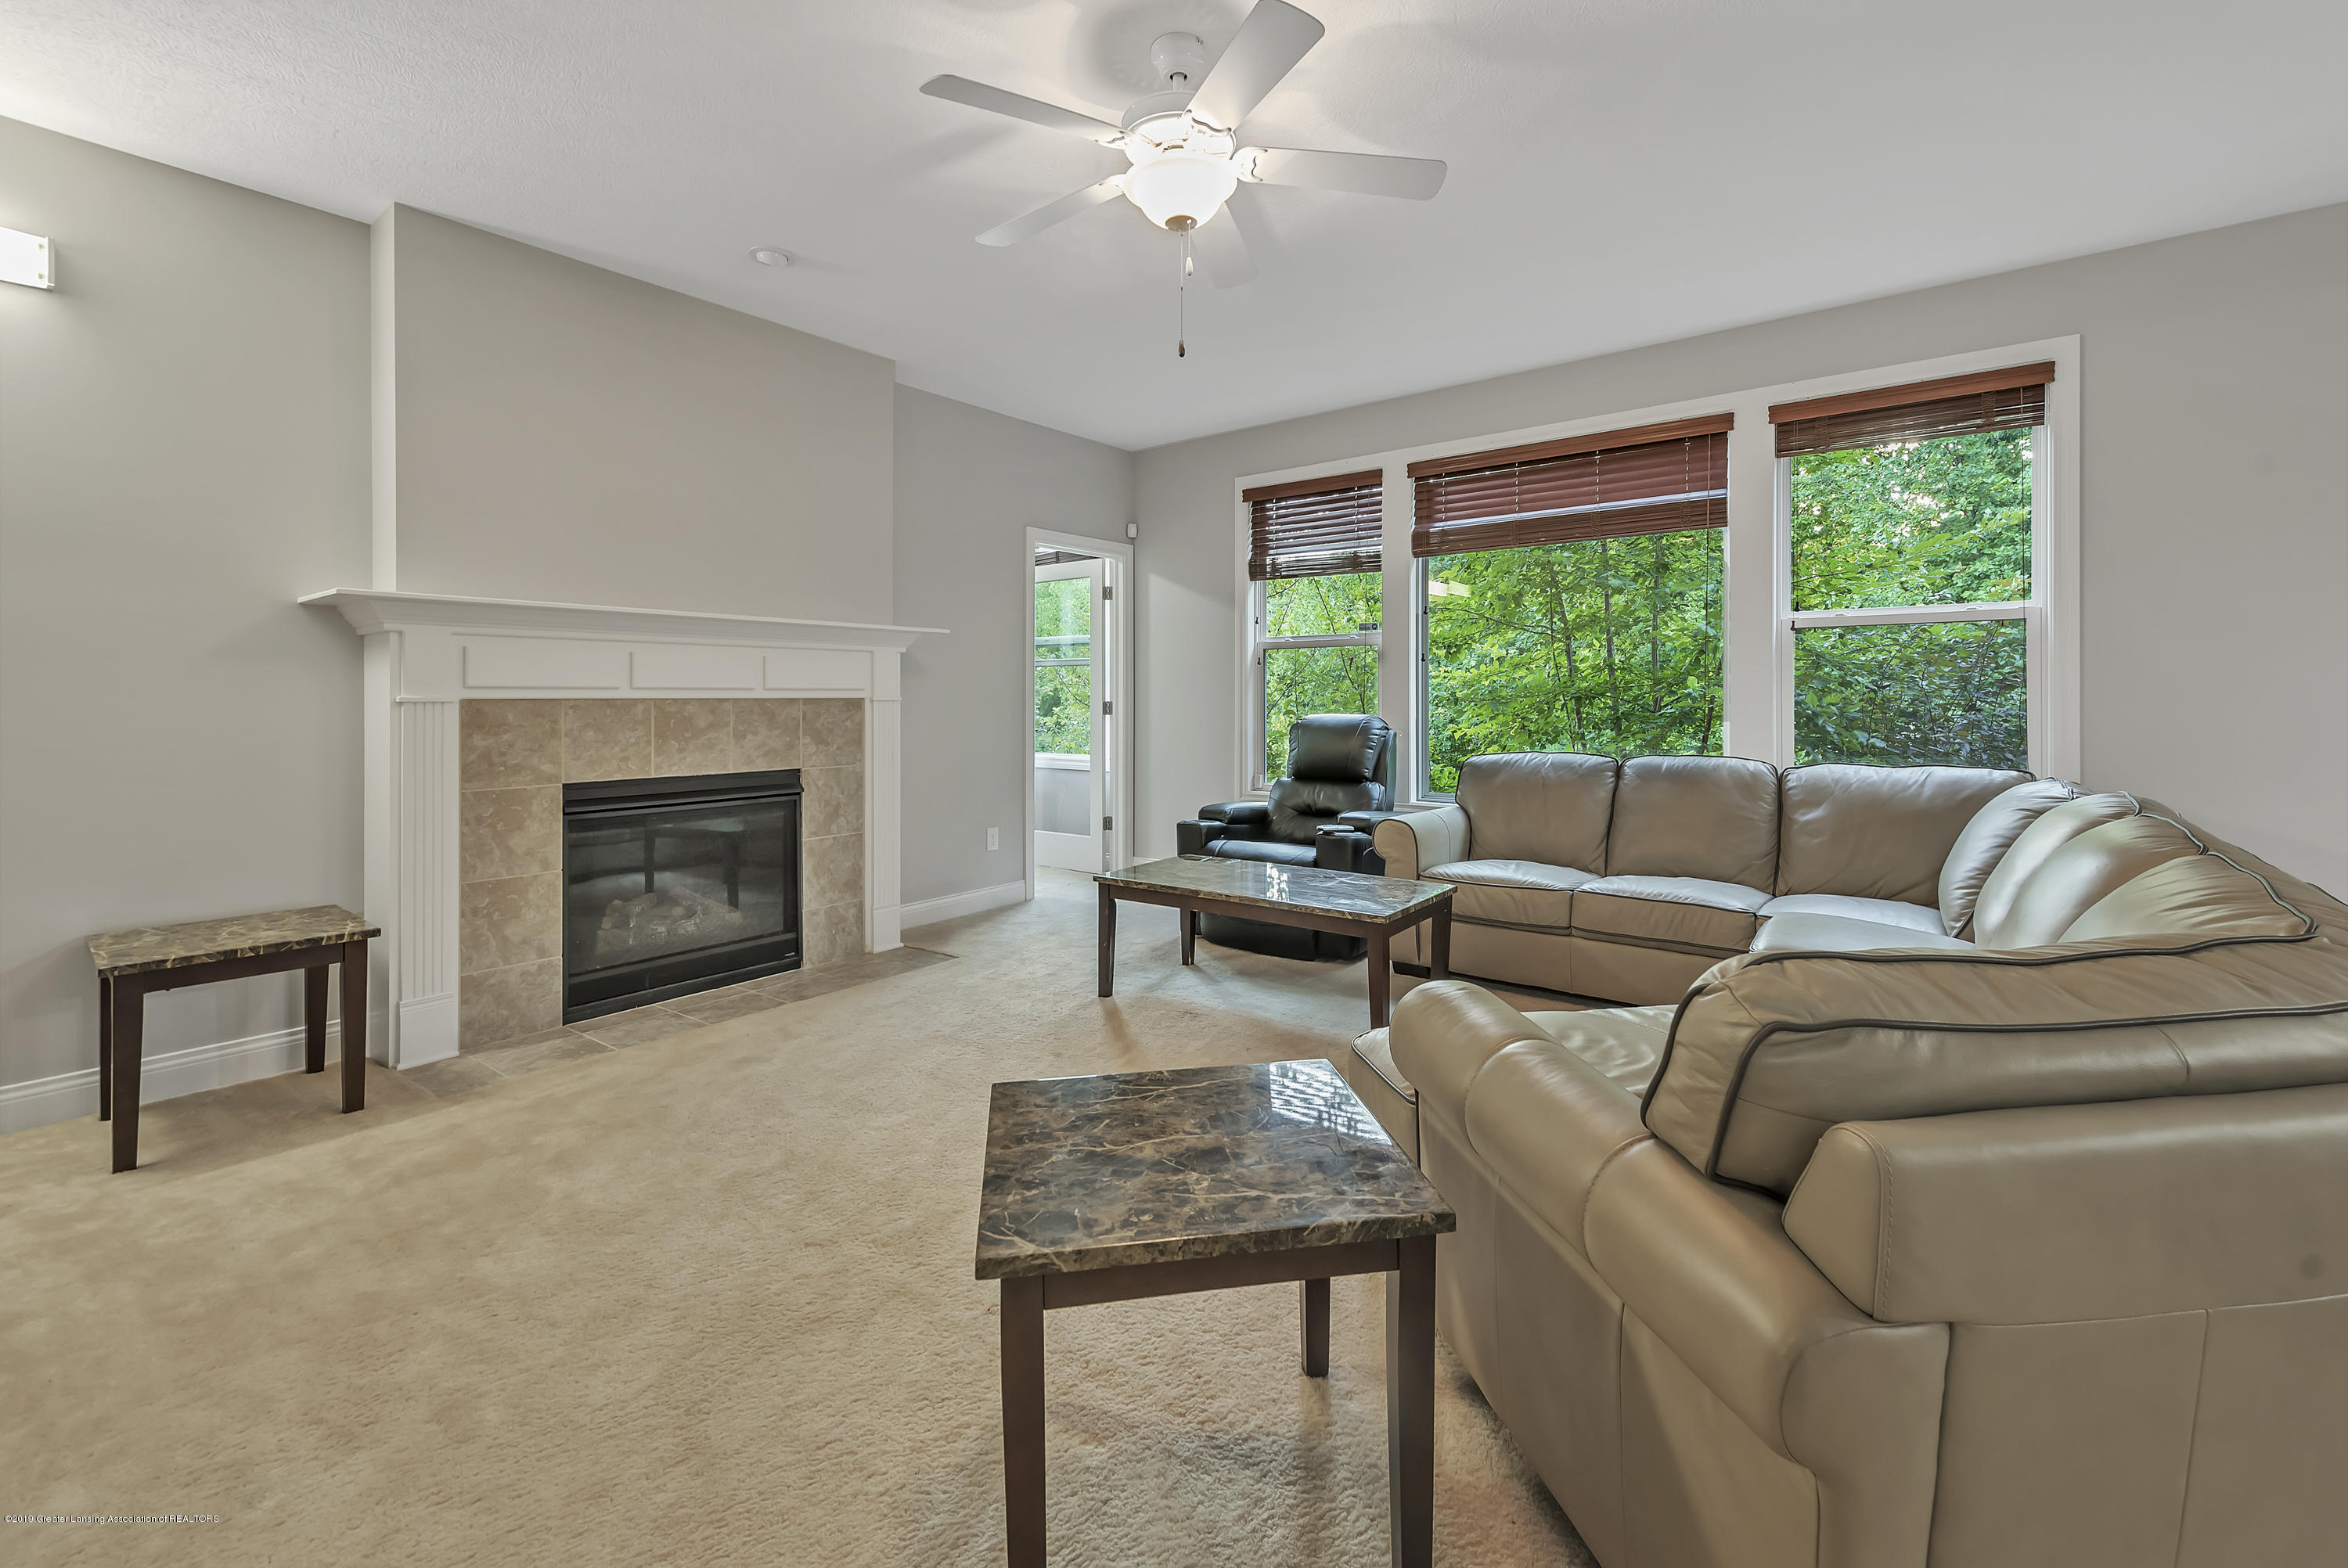 4229 Rain Forest Cir - 4229-Rainforest-Circle-Okemos-MI-windows - 17